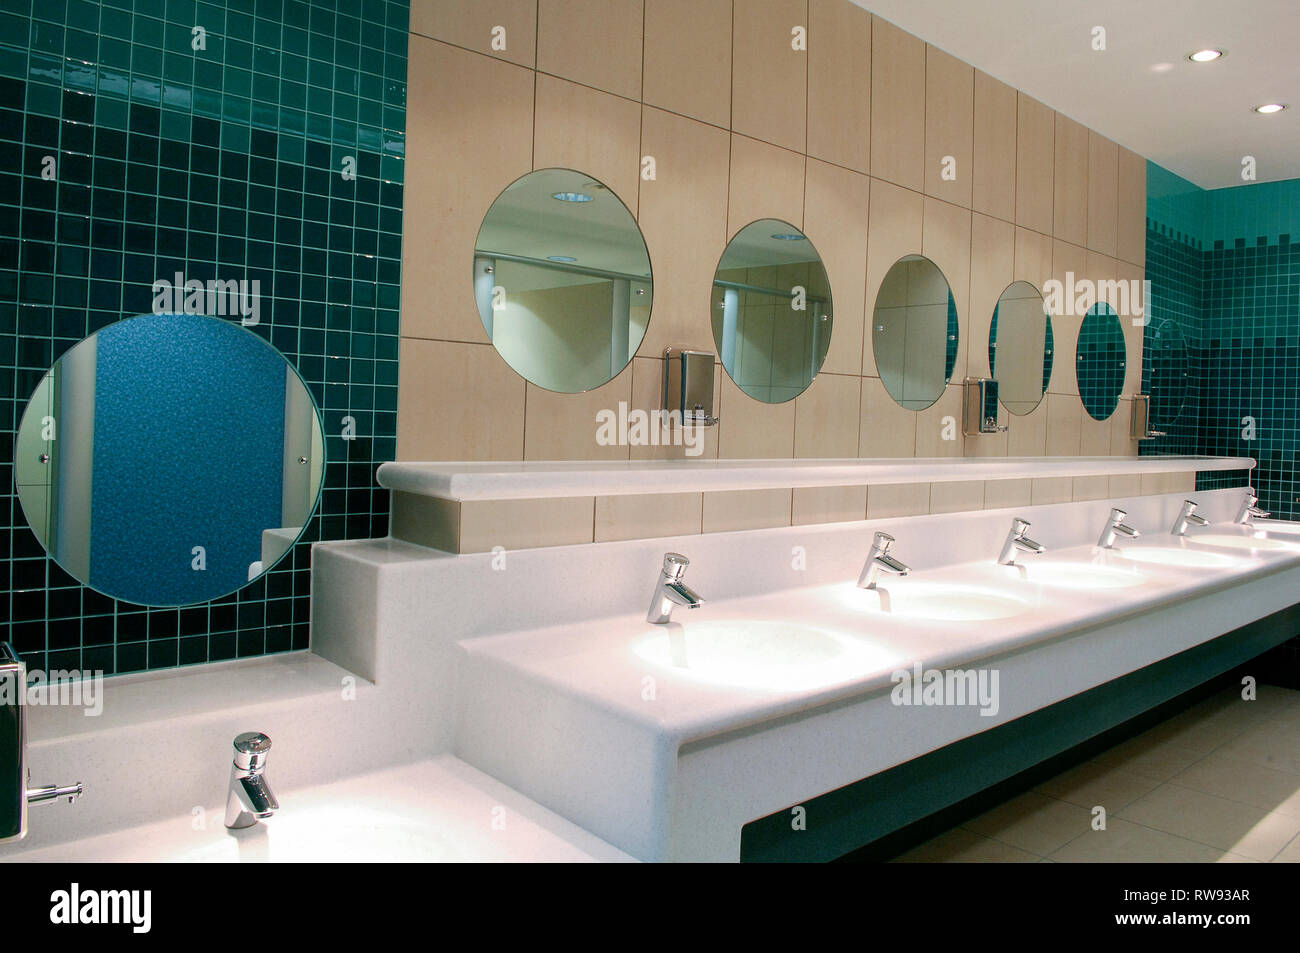 Rows of sinks and mirrors in a public restroom - Stock Image